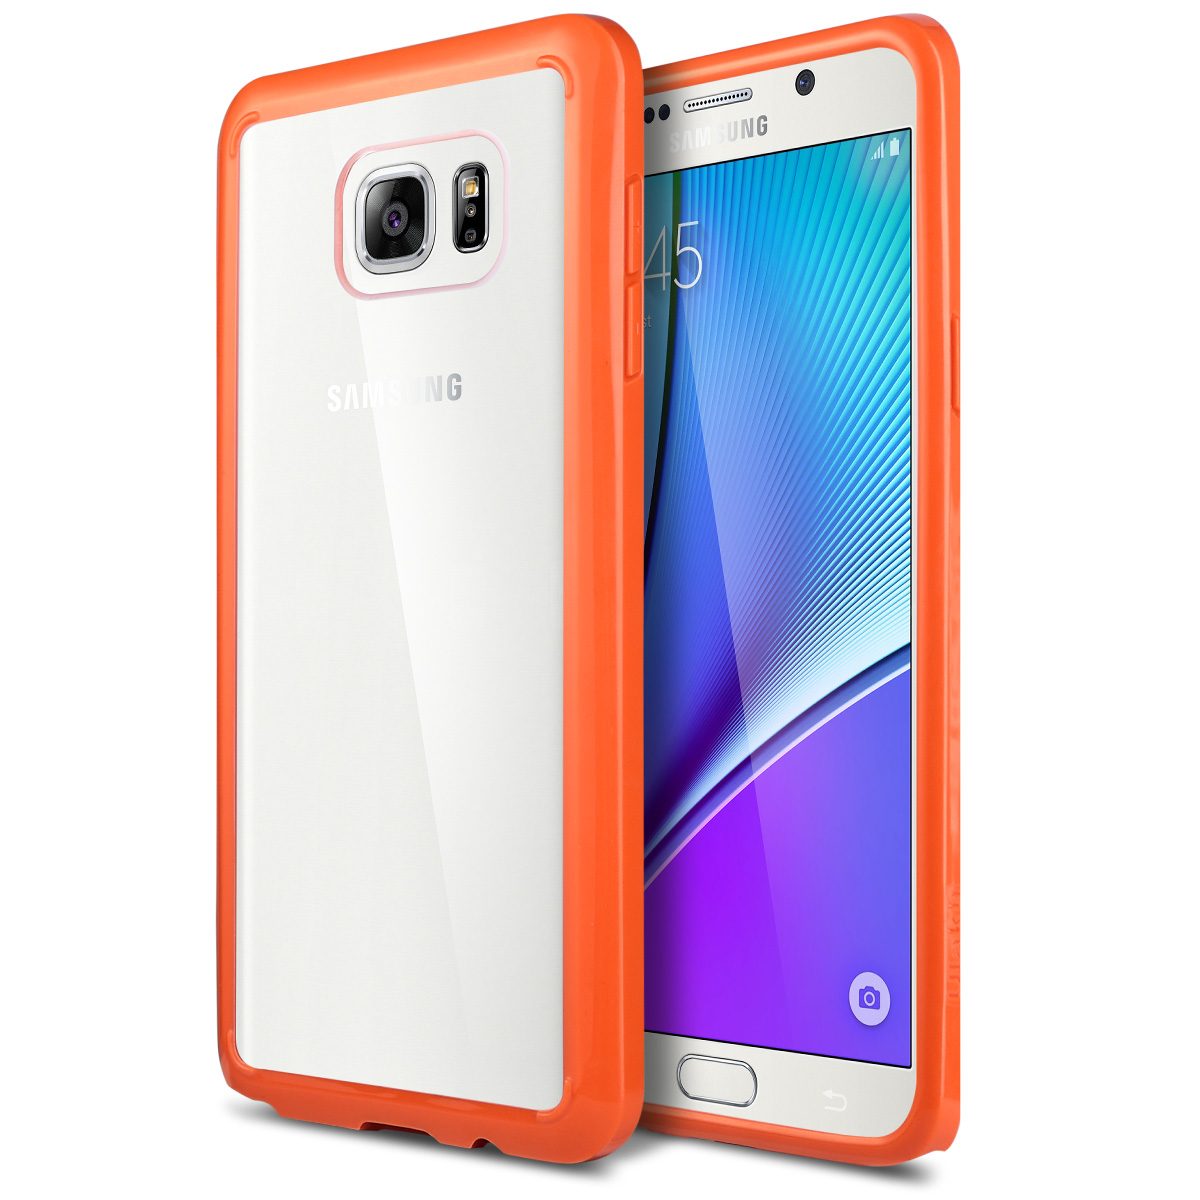 ULAK Galaxy Note 5 Case Shock Resistance 3in1 Anti Slip Note 5 Case Hybrid With Soft Flexible Inner Silicone Skin Protective Case Hard Cover